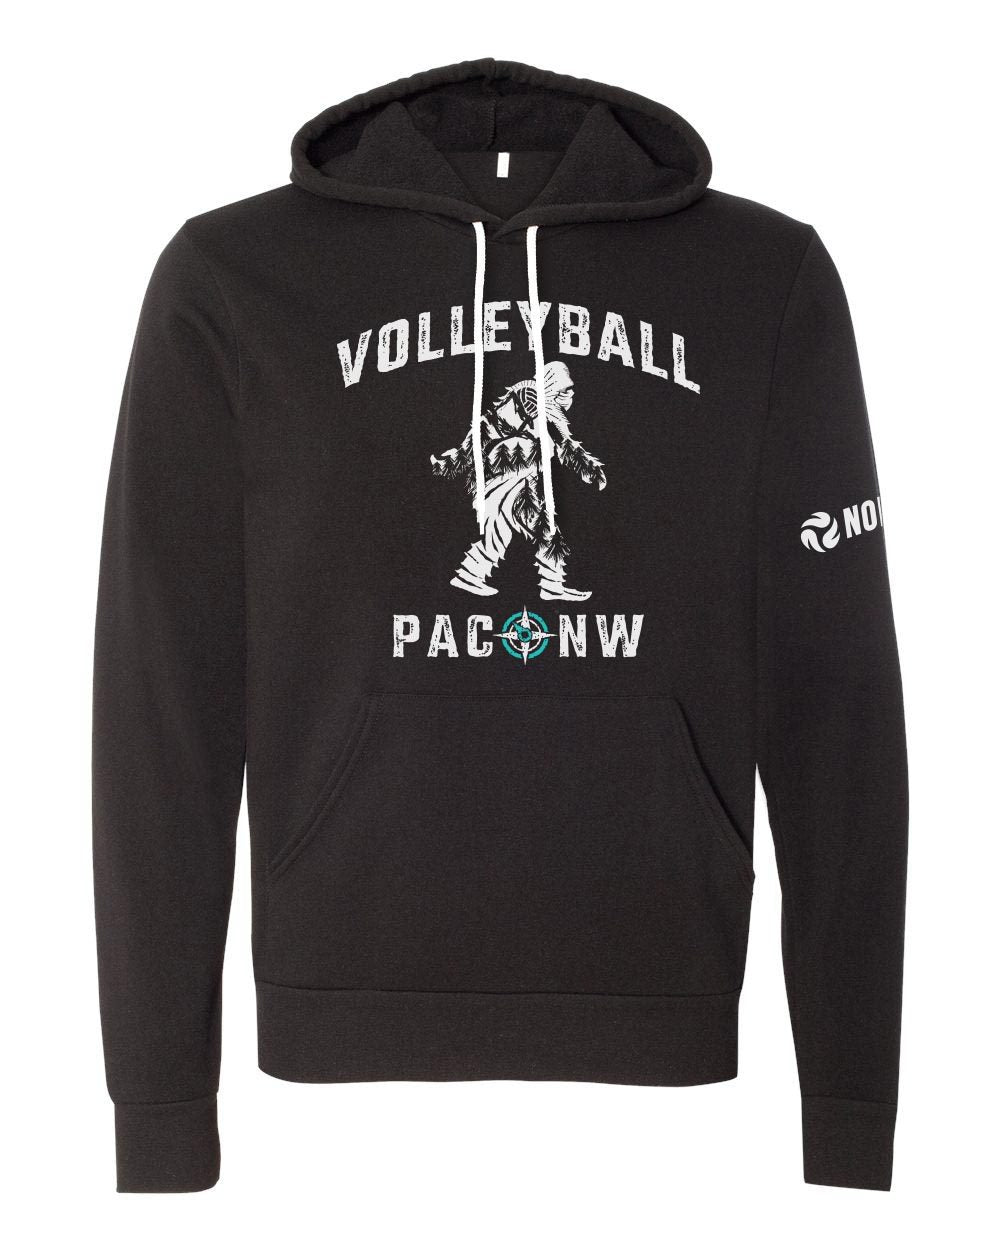 Sasquatch - PACNW Hooded Sweatshirt - No Dinx Volleyball